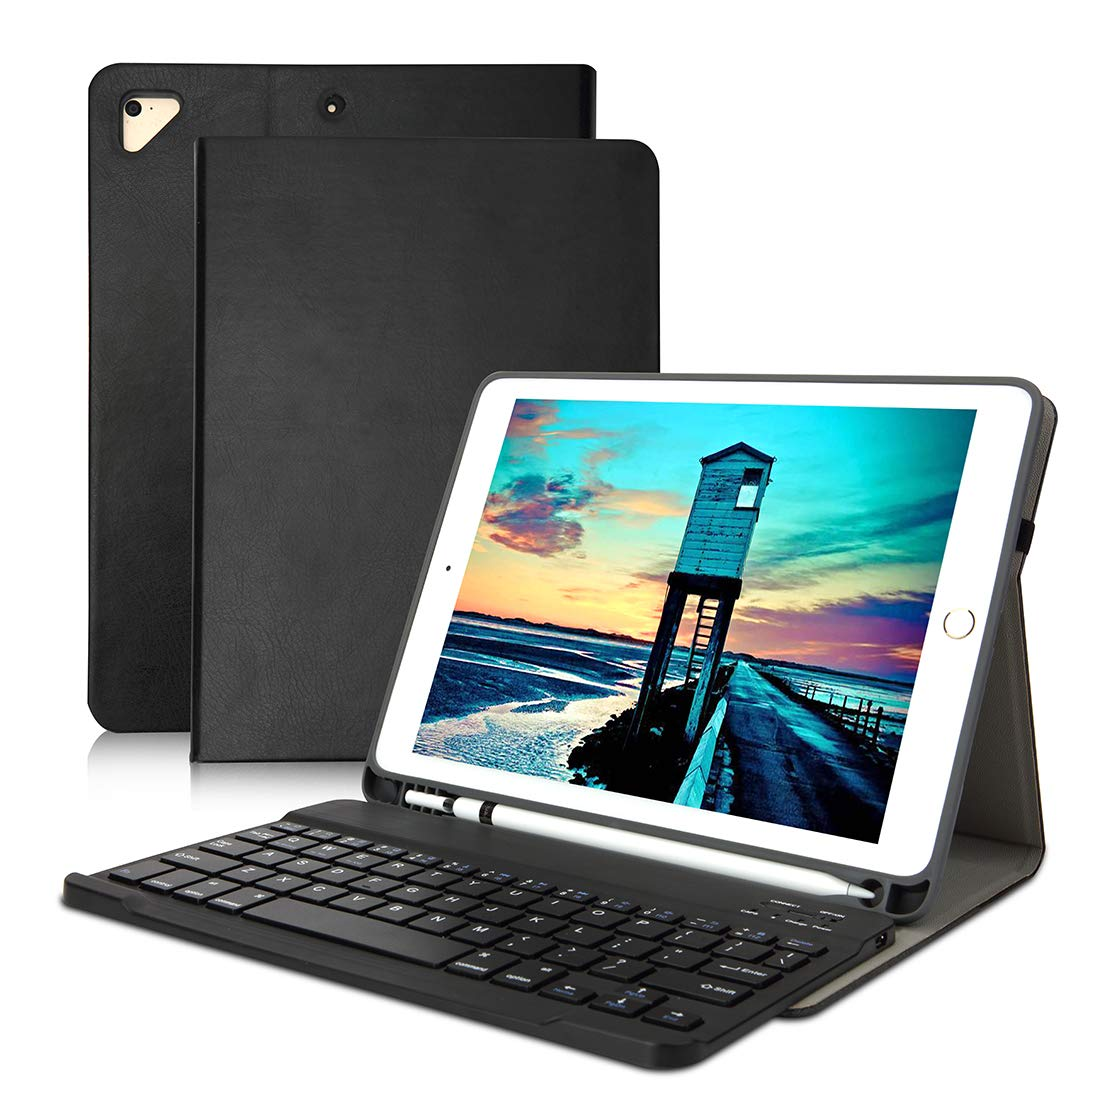 JOSITIN iPad Keyboard Case 9.7 with Detachable Wireless Bluetooth Keyboard Cover Built-in Pencil Holder for iPad 2018(6th Gen) iPad 2017(5th Gen) iPad Pro 9.7 iPad Air 2 & 1 Black